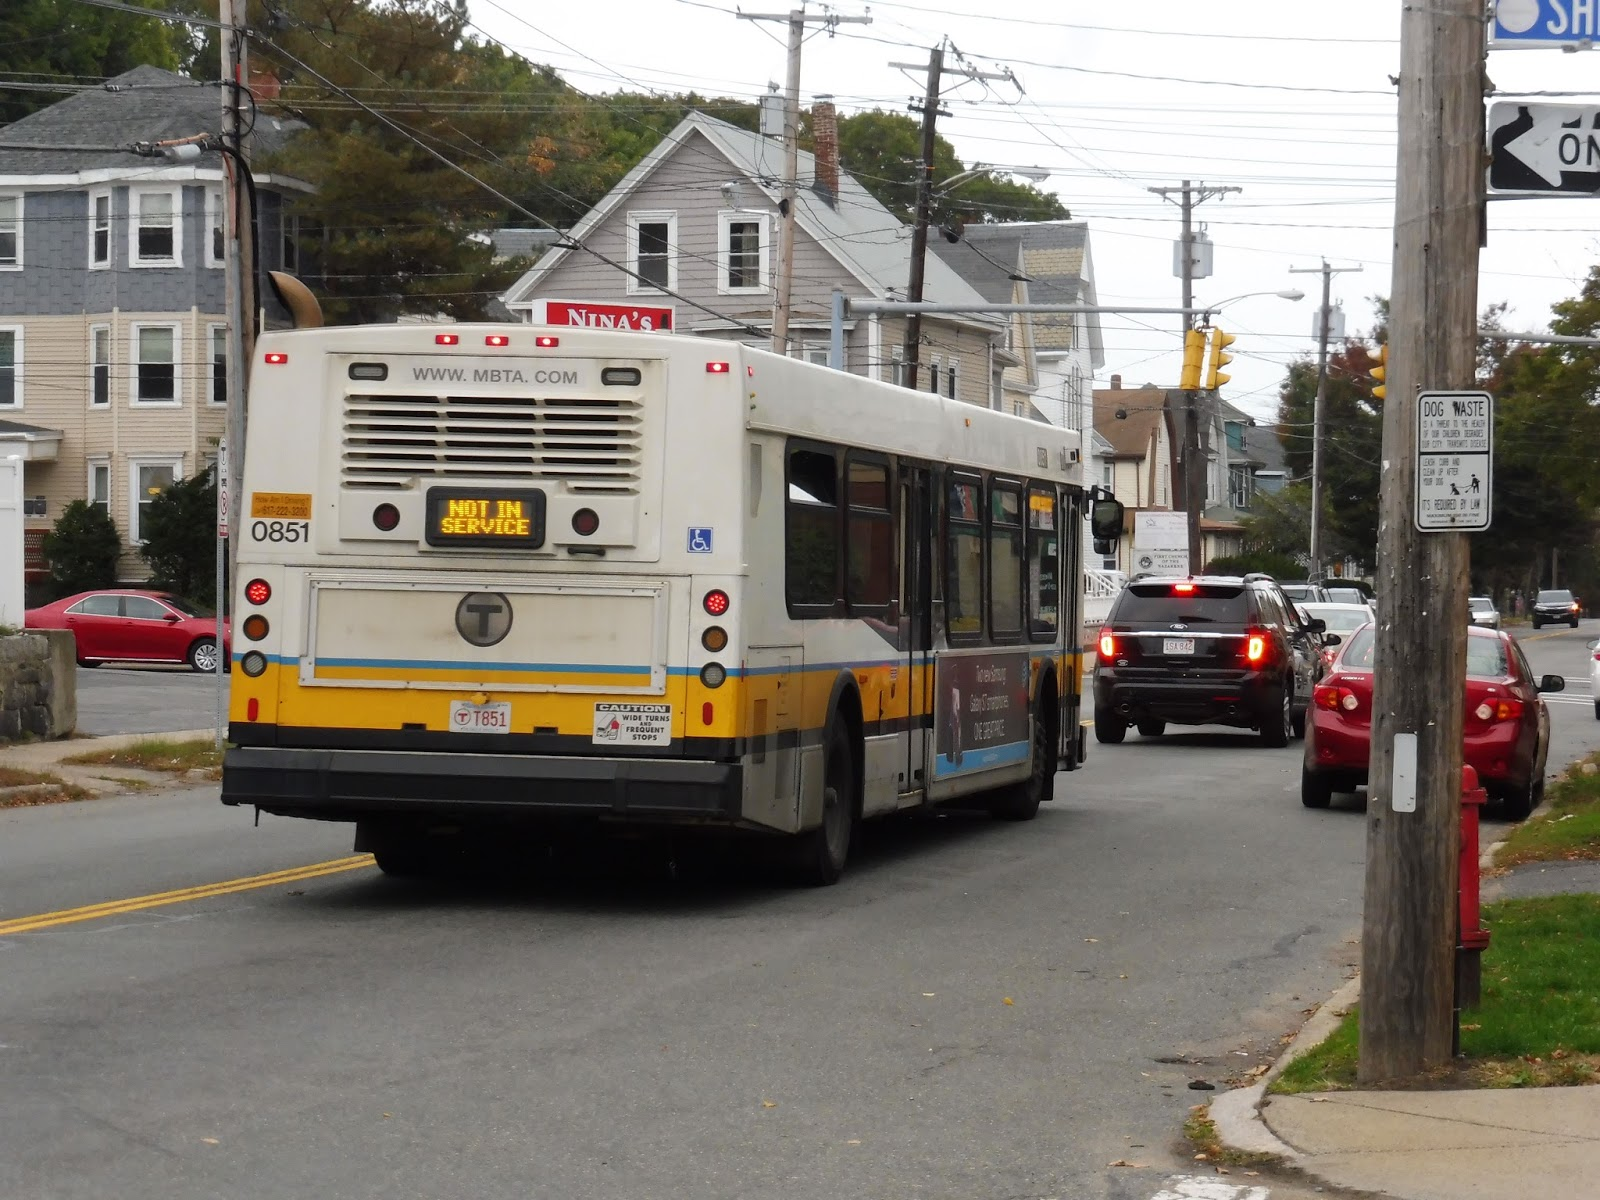 Miles On The Mbta 424 424w Eastern Ave And Essex Street